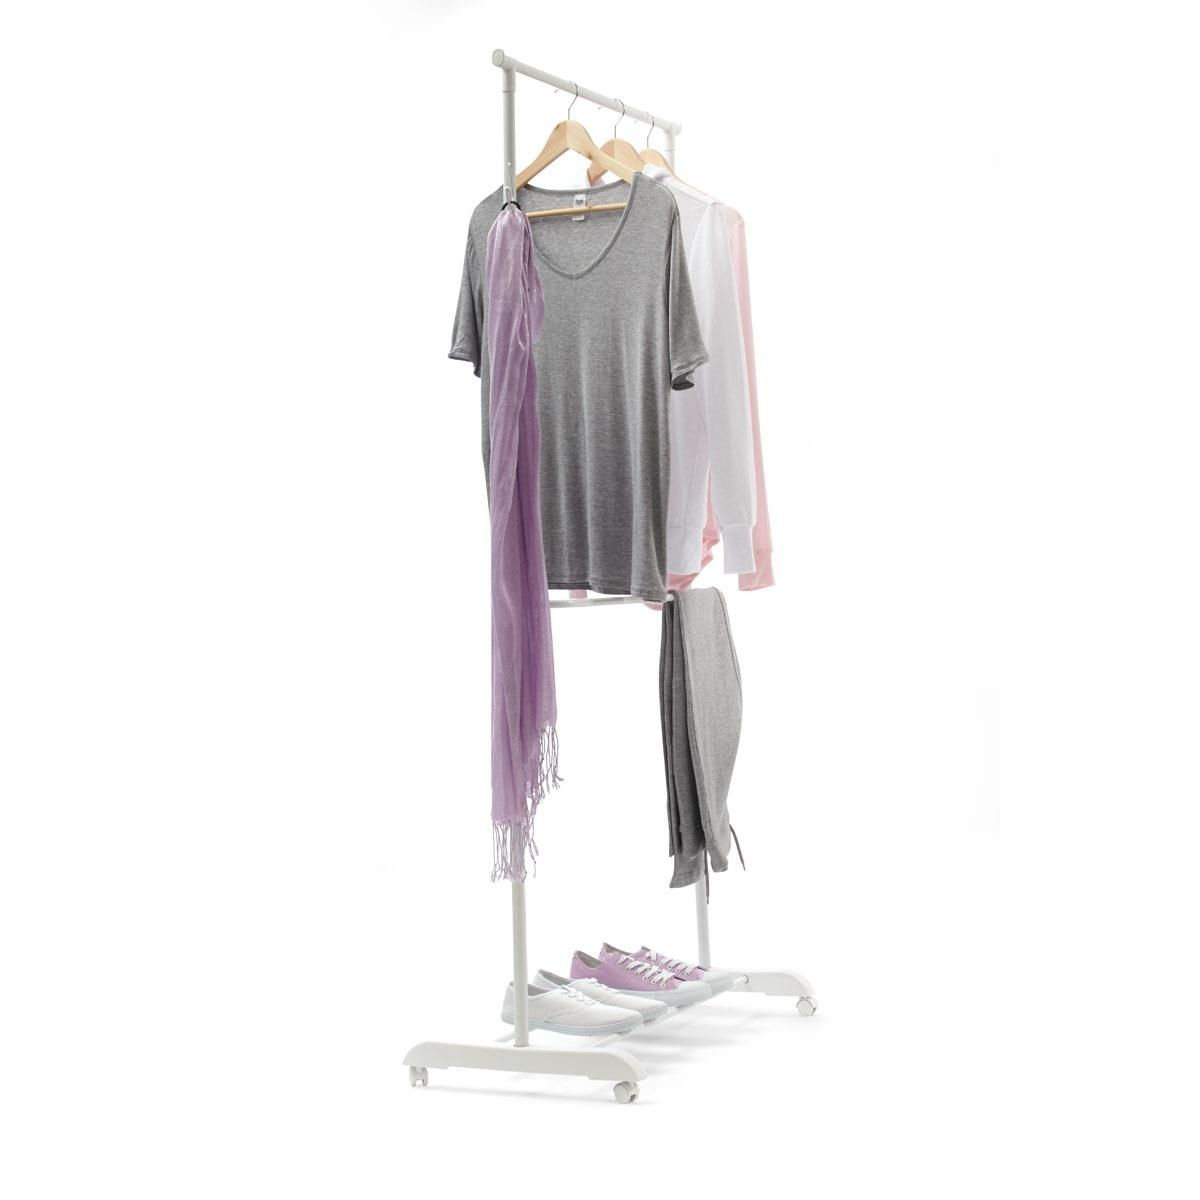 Adjustable Garment Rack Home & Co